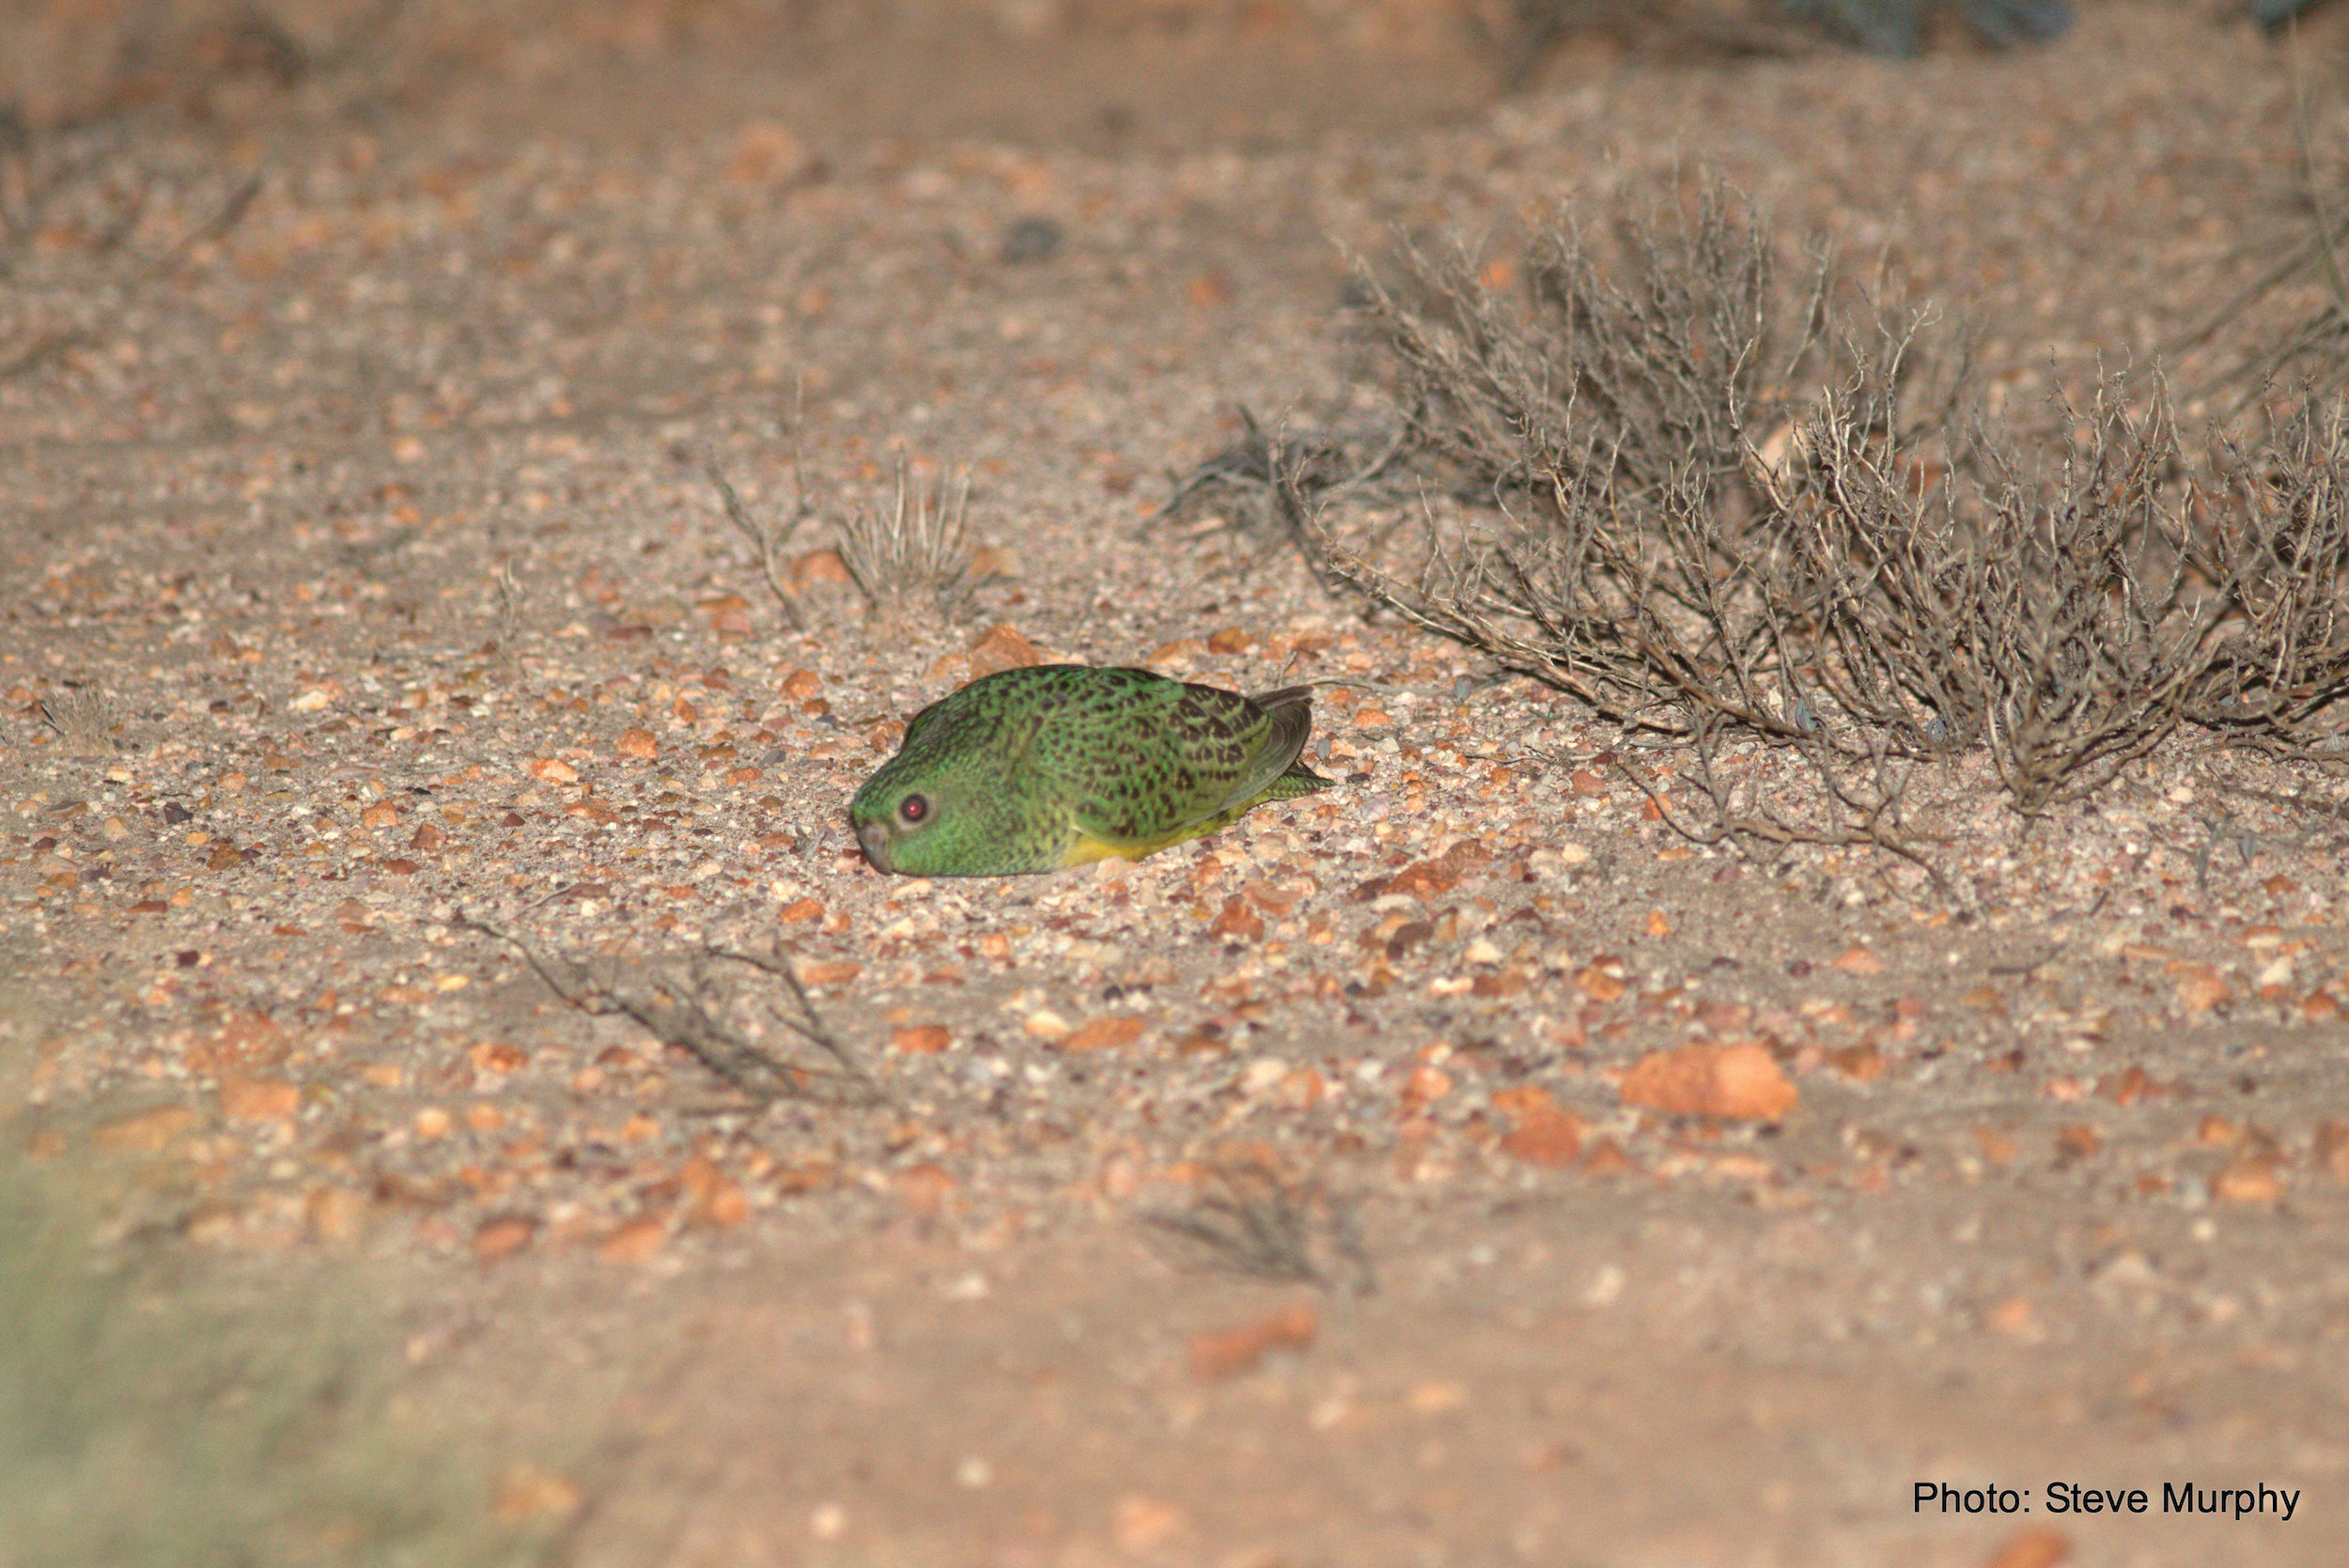 Crouched posture adopted by adult Night Parrot